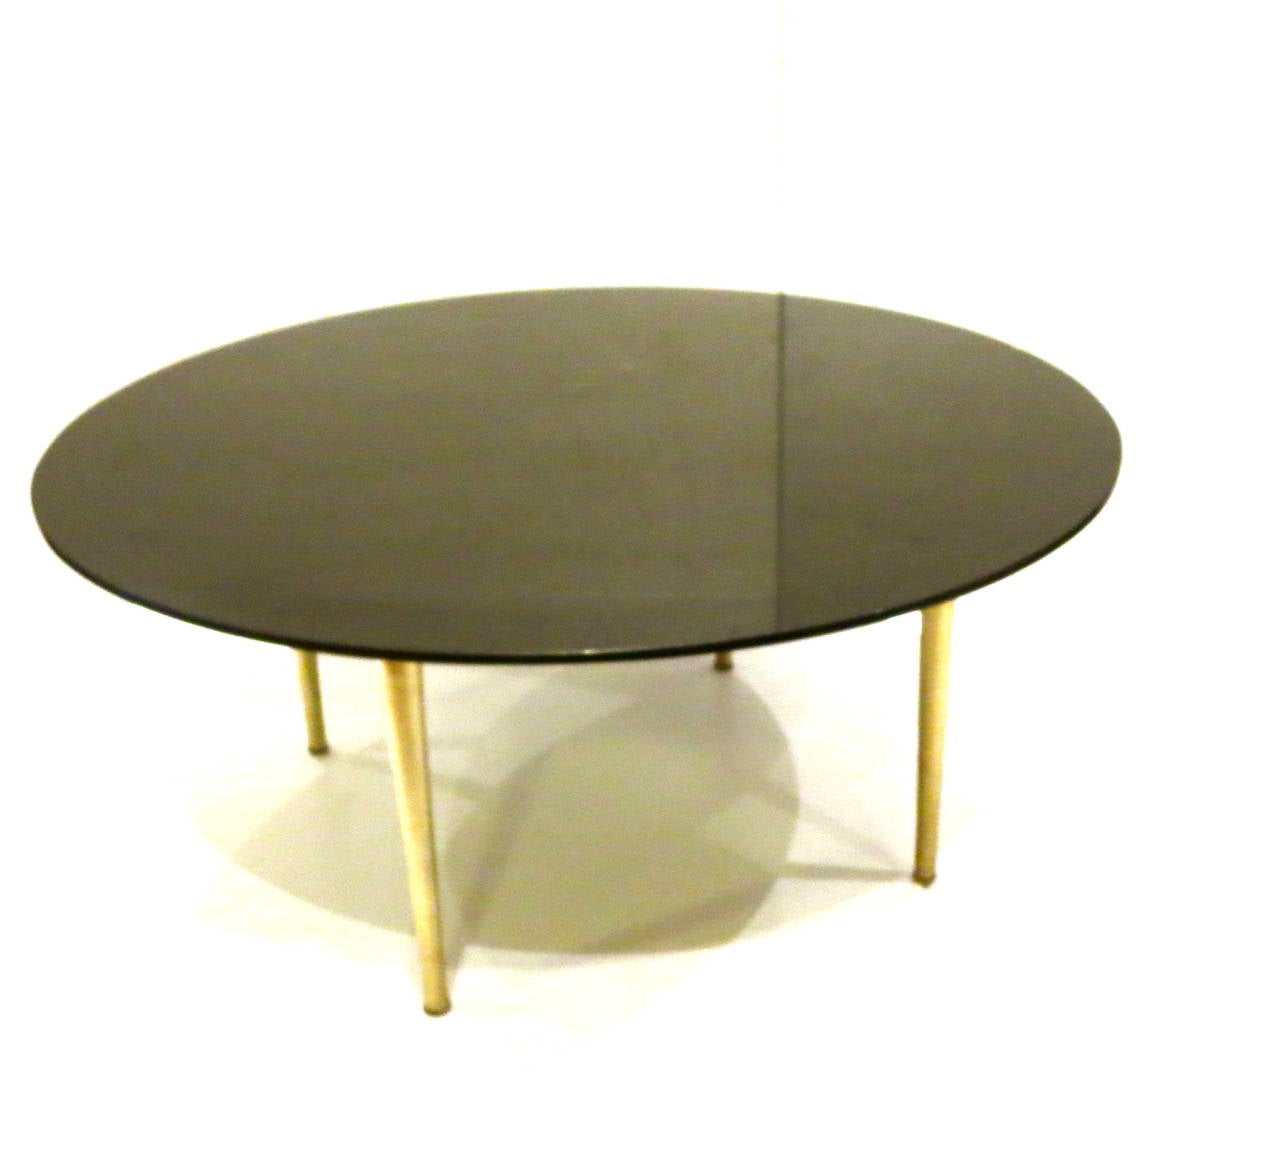 American Modern Polished Black Granite Coffee Table With Brushed Aluminum Legs At 1stdibs